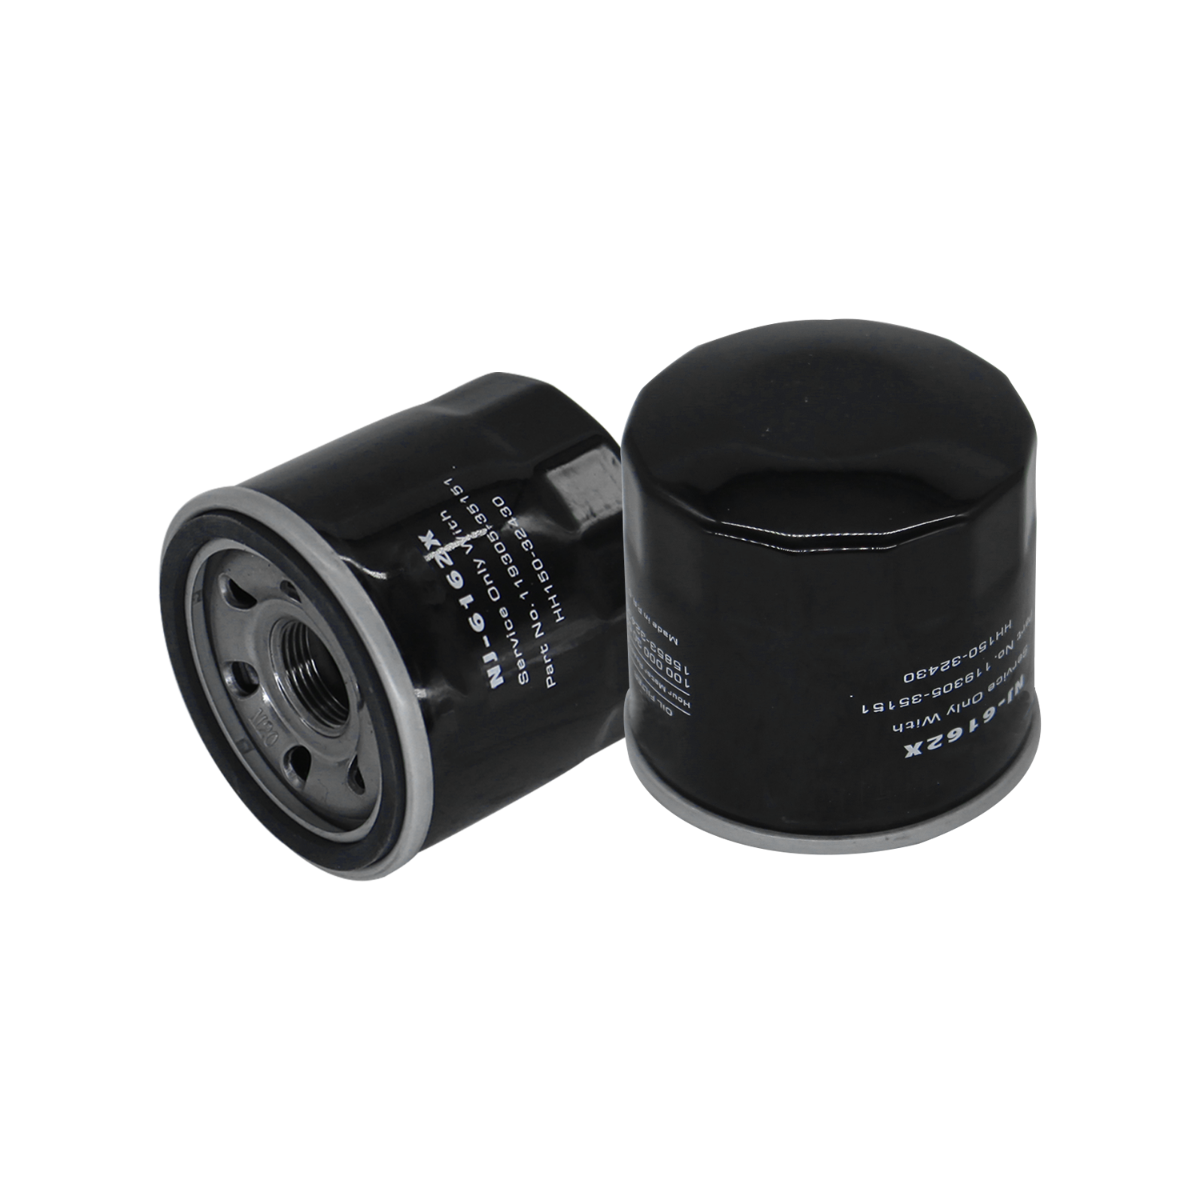 Oil Filter 115-8189 2Pcs Compatible with Hitachi Zaxis 8 ZX17U-2 ZX8-2